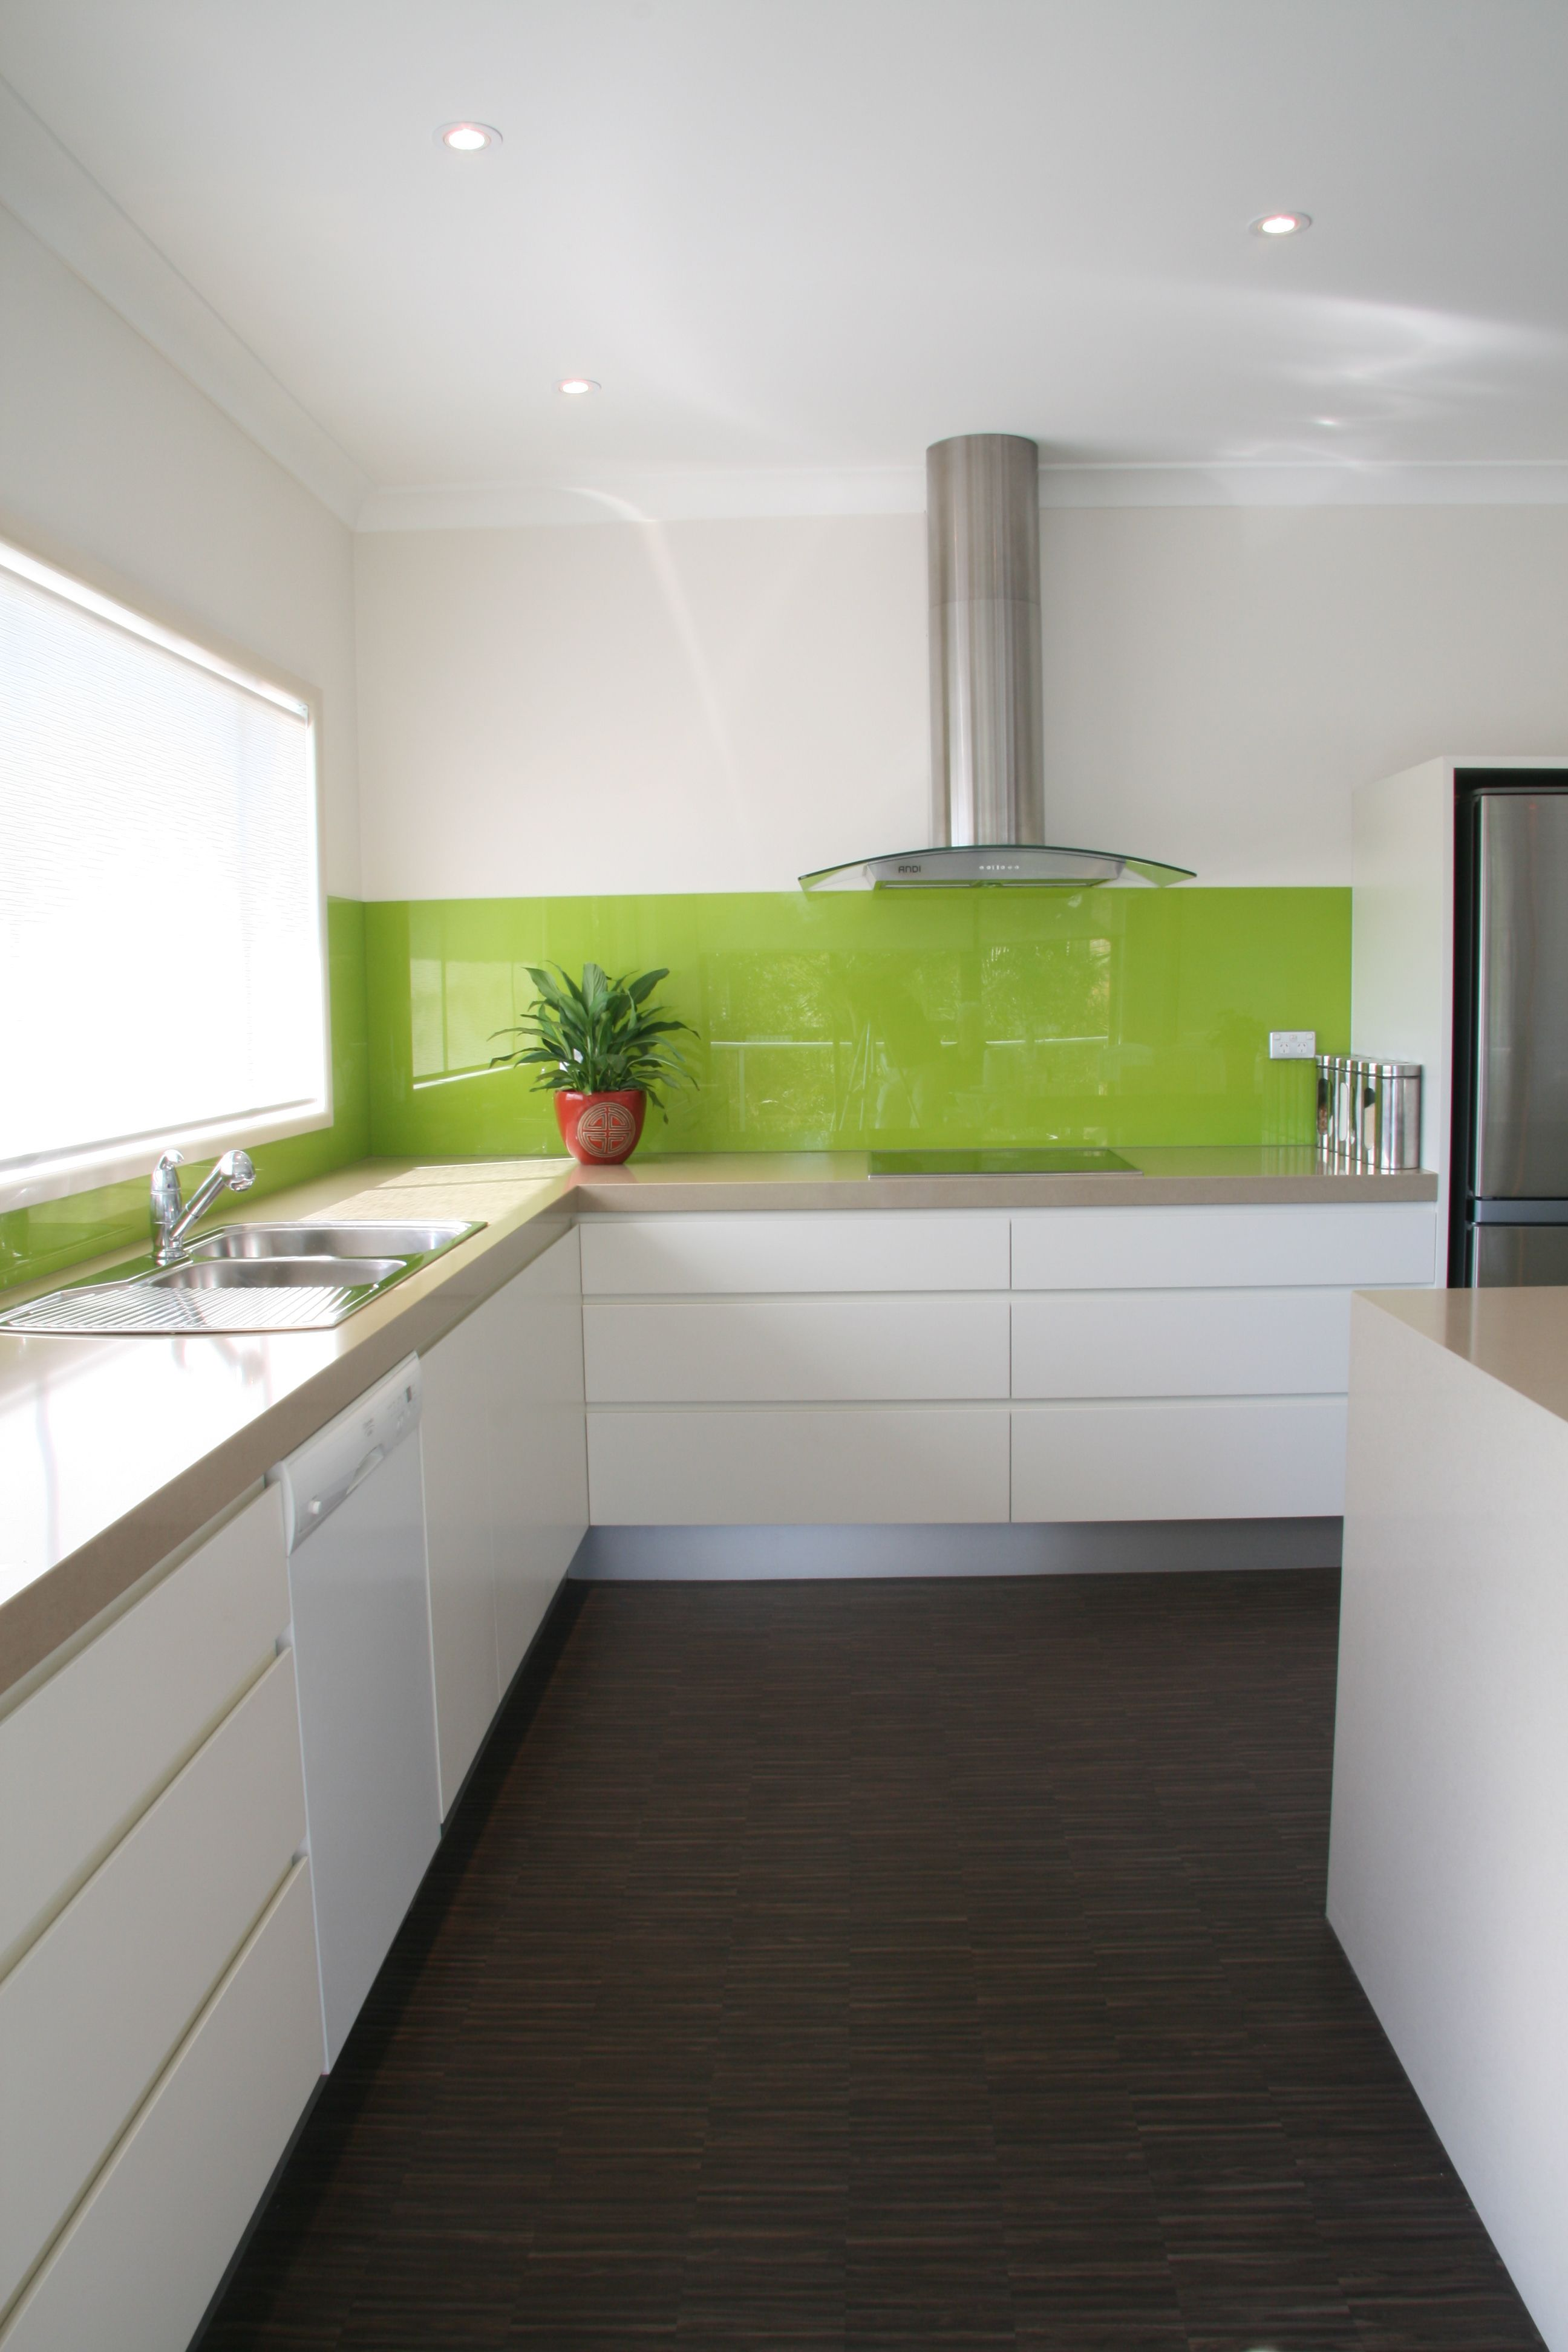 Add Zest To Your Kitchen With This Lime Green Splashback Gl Shown Here By Artform